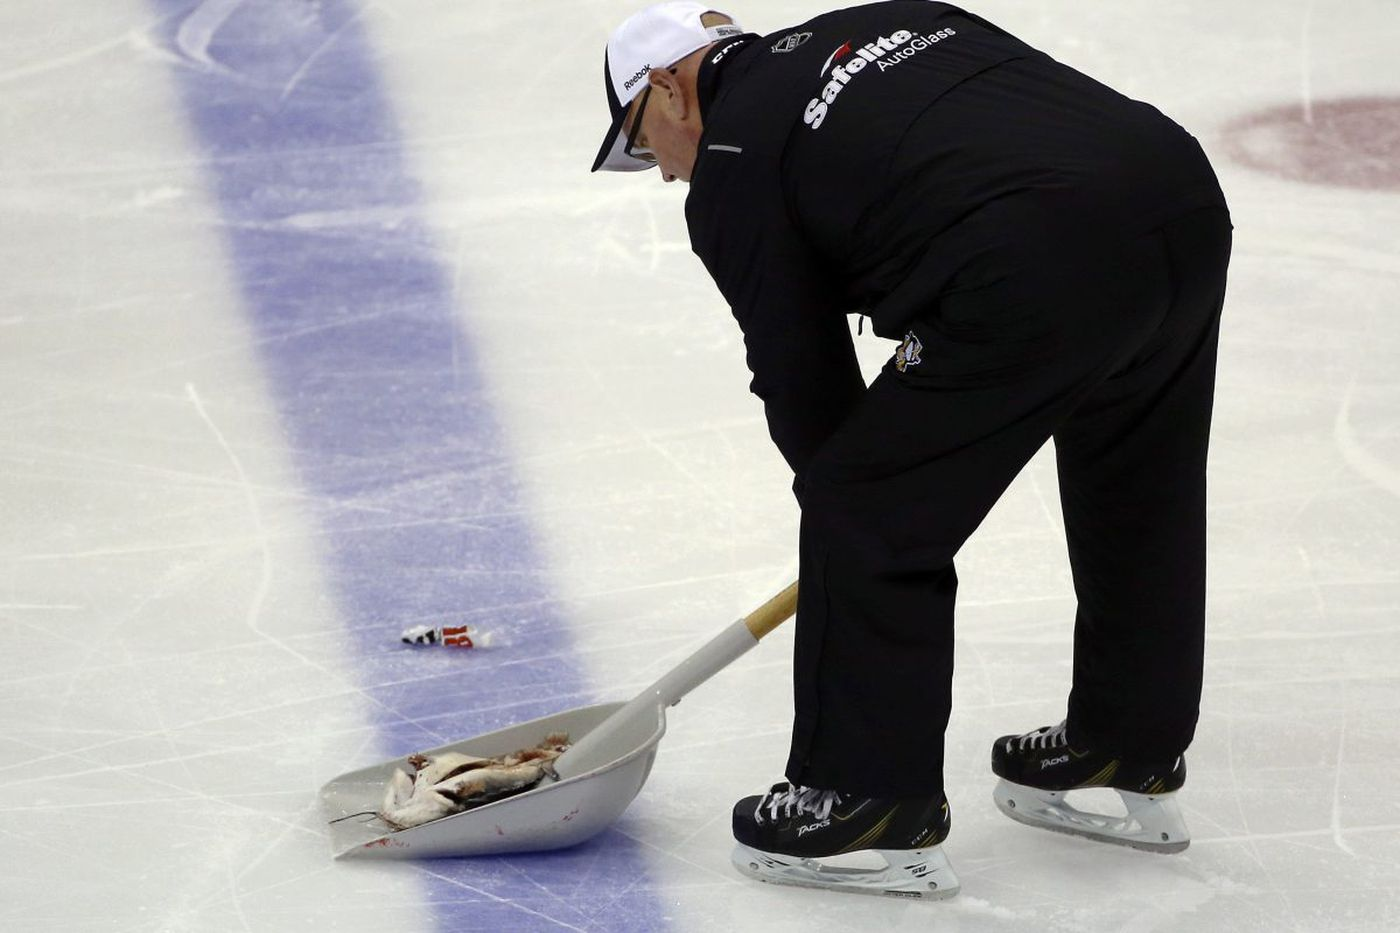 Fan smuggles catfish into Stanley Cup game in his shorts, tosses it on ice